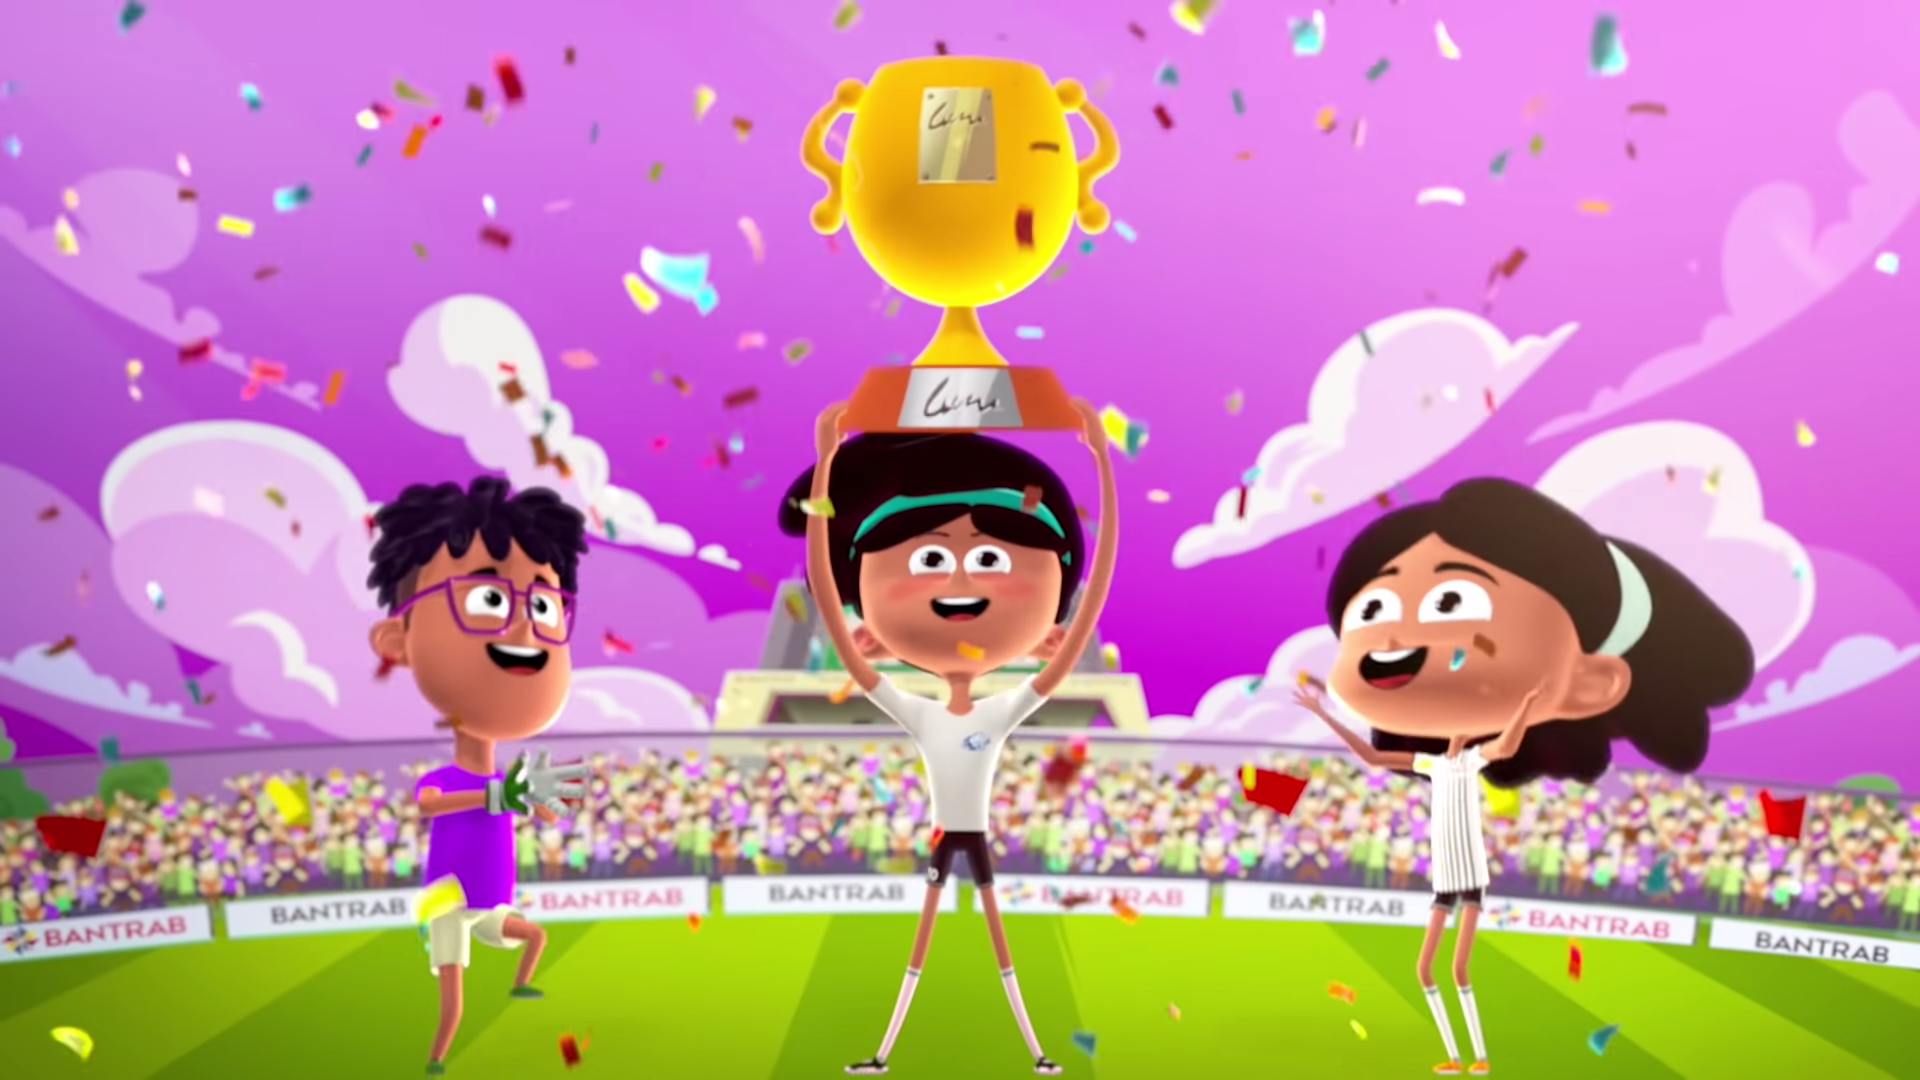 Rocknrolla and BANTRAB Bank's Animated Series for Kids Reaches 6 Million Views